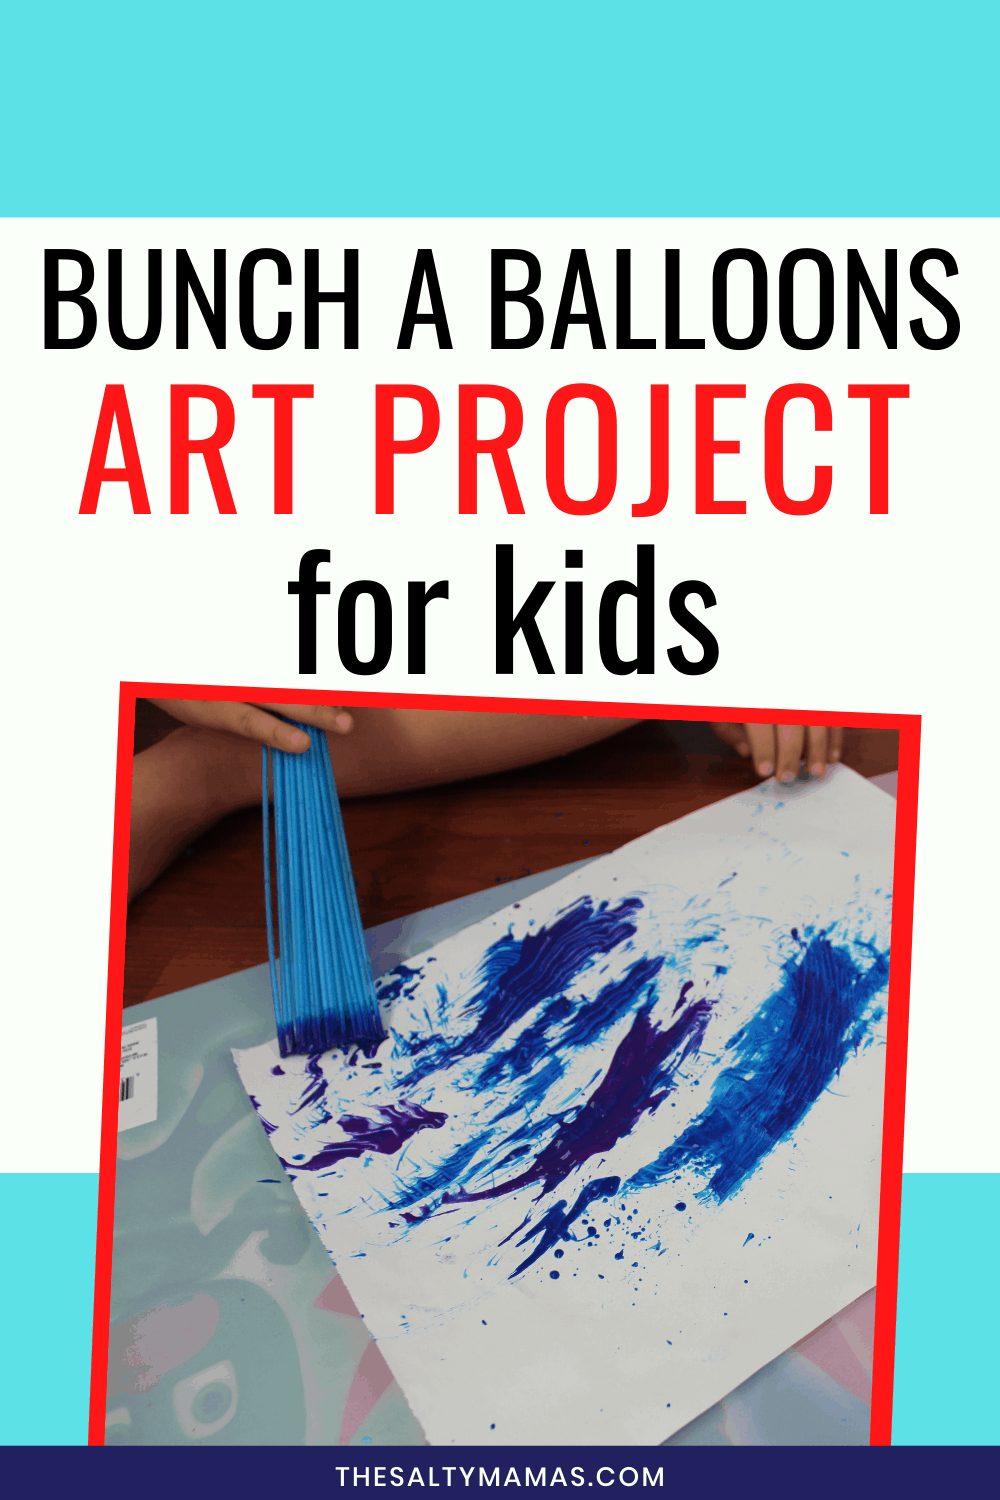 Straw paint brush using blue paint to create art on paper. Text overlay: Bunch A Balloons art project for kids.